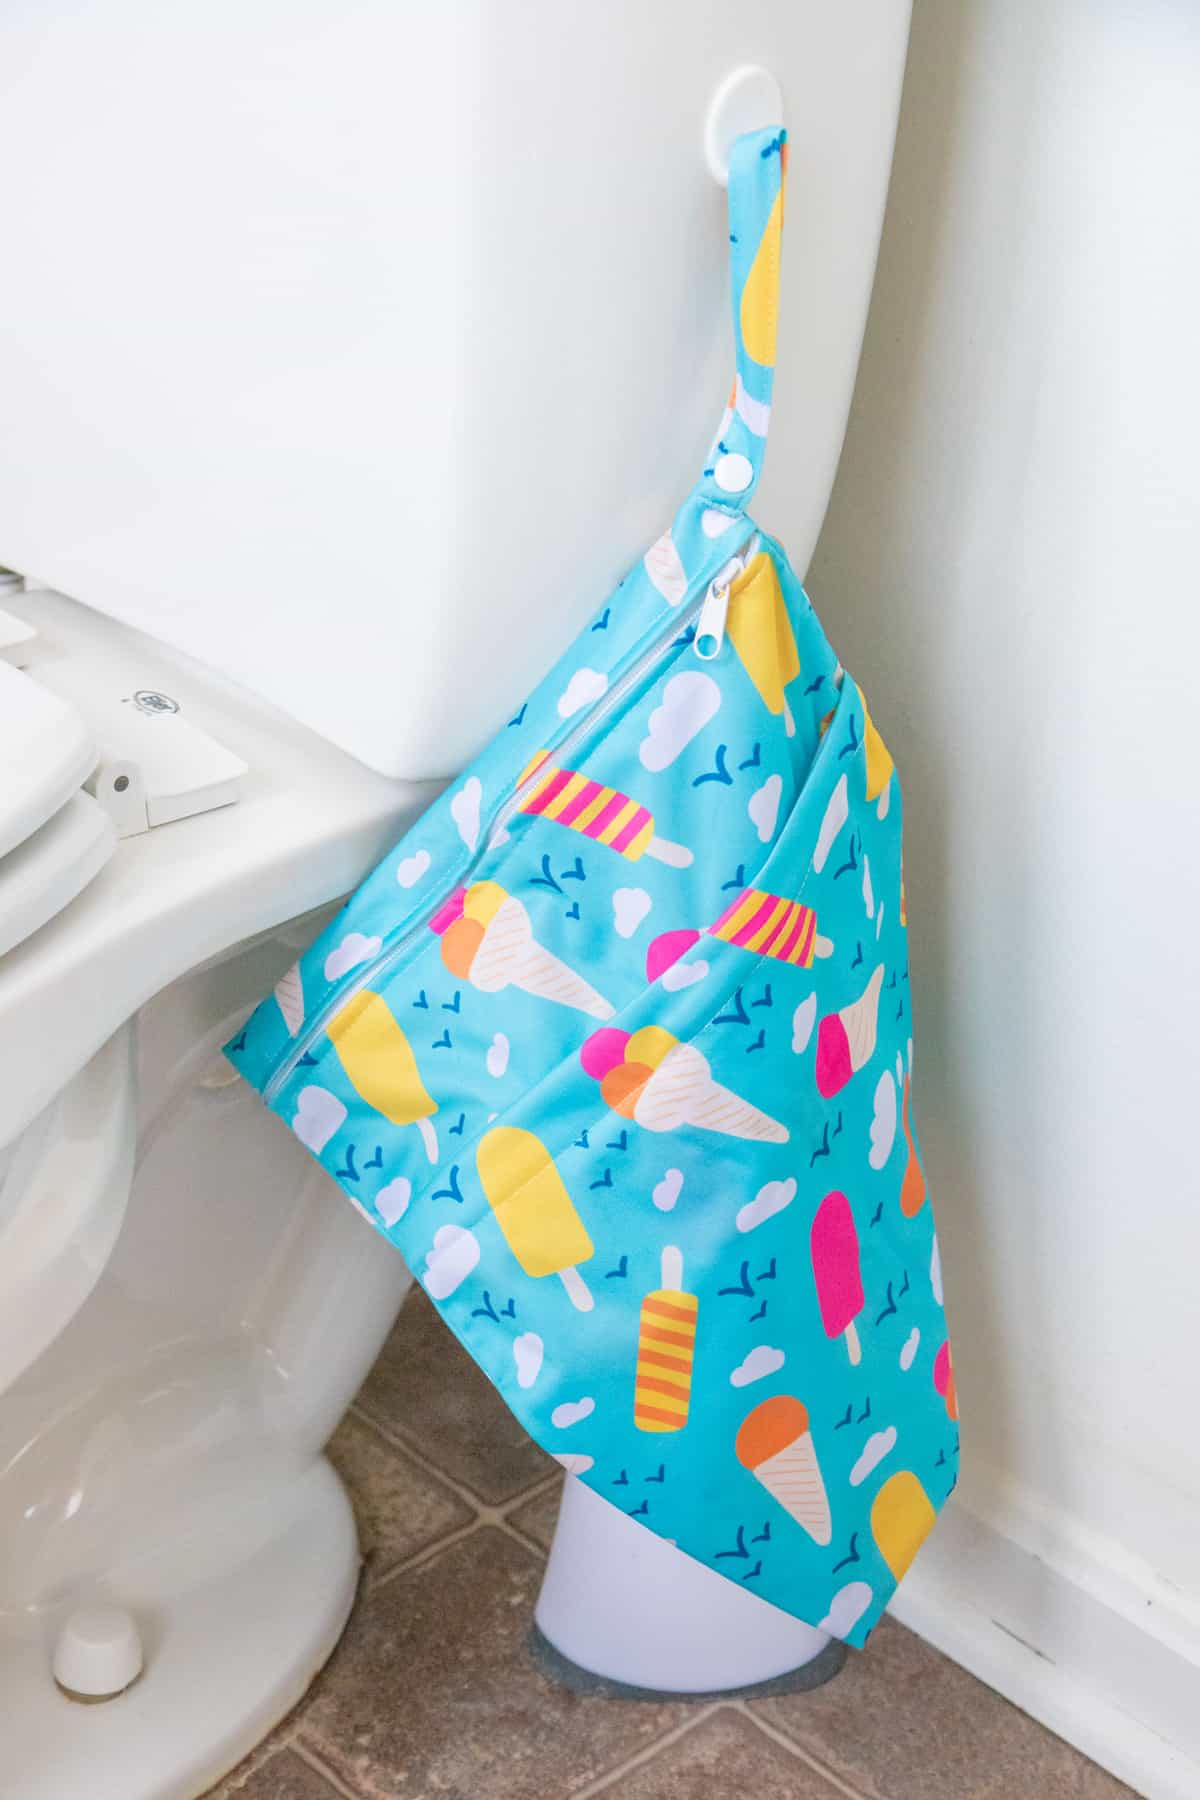 A wet bag hangs on the side of a toilet with a command strip.